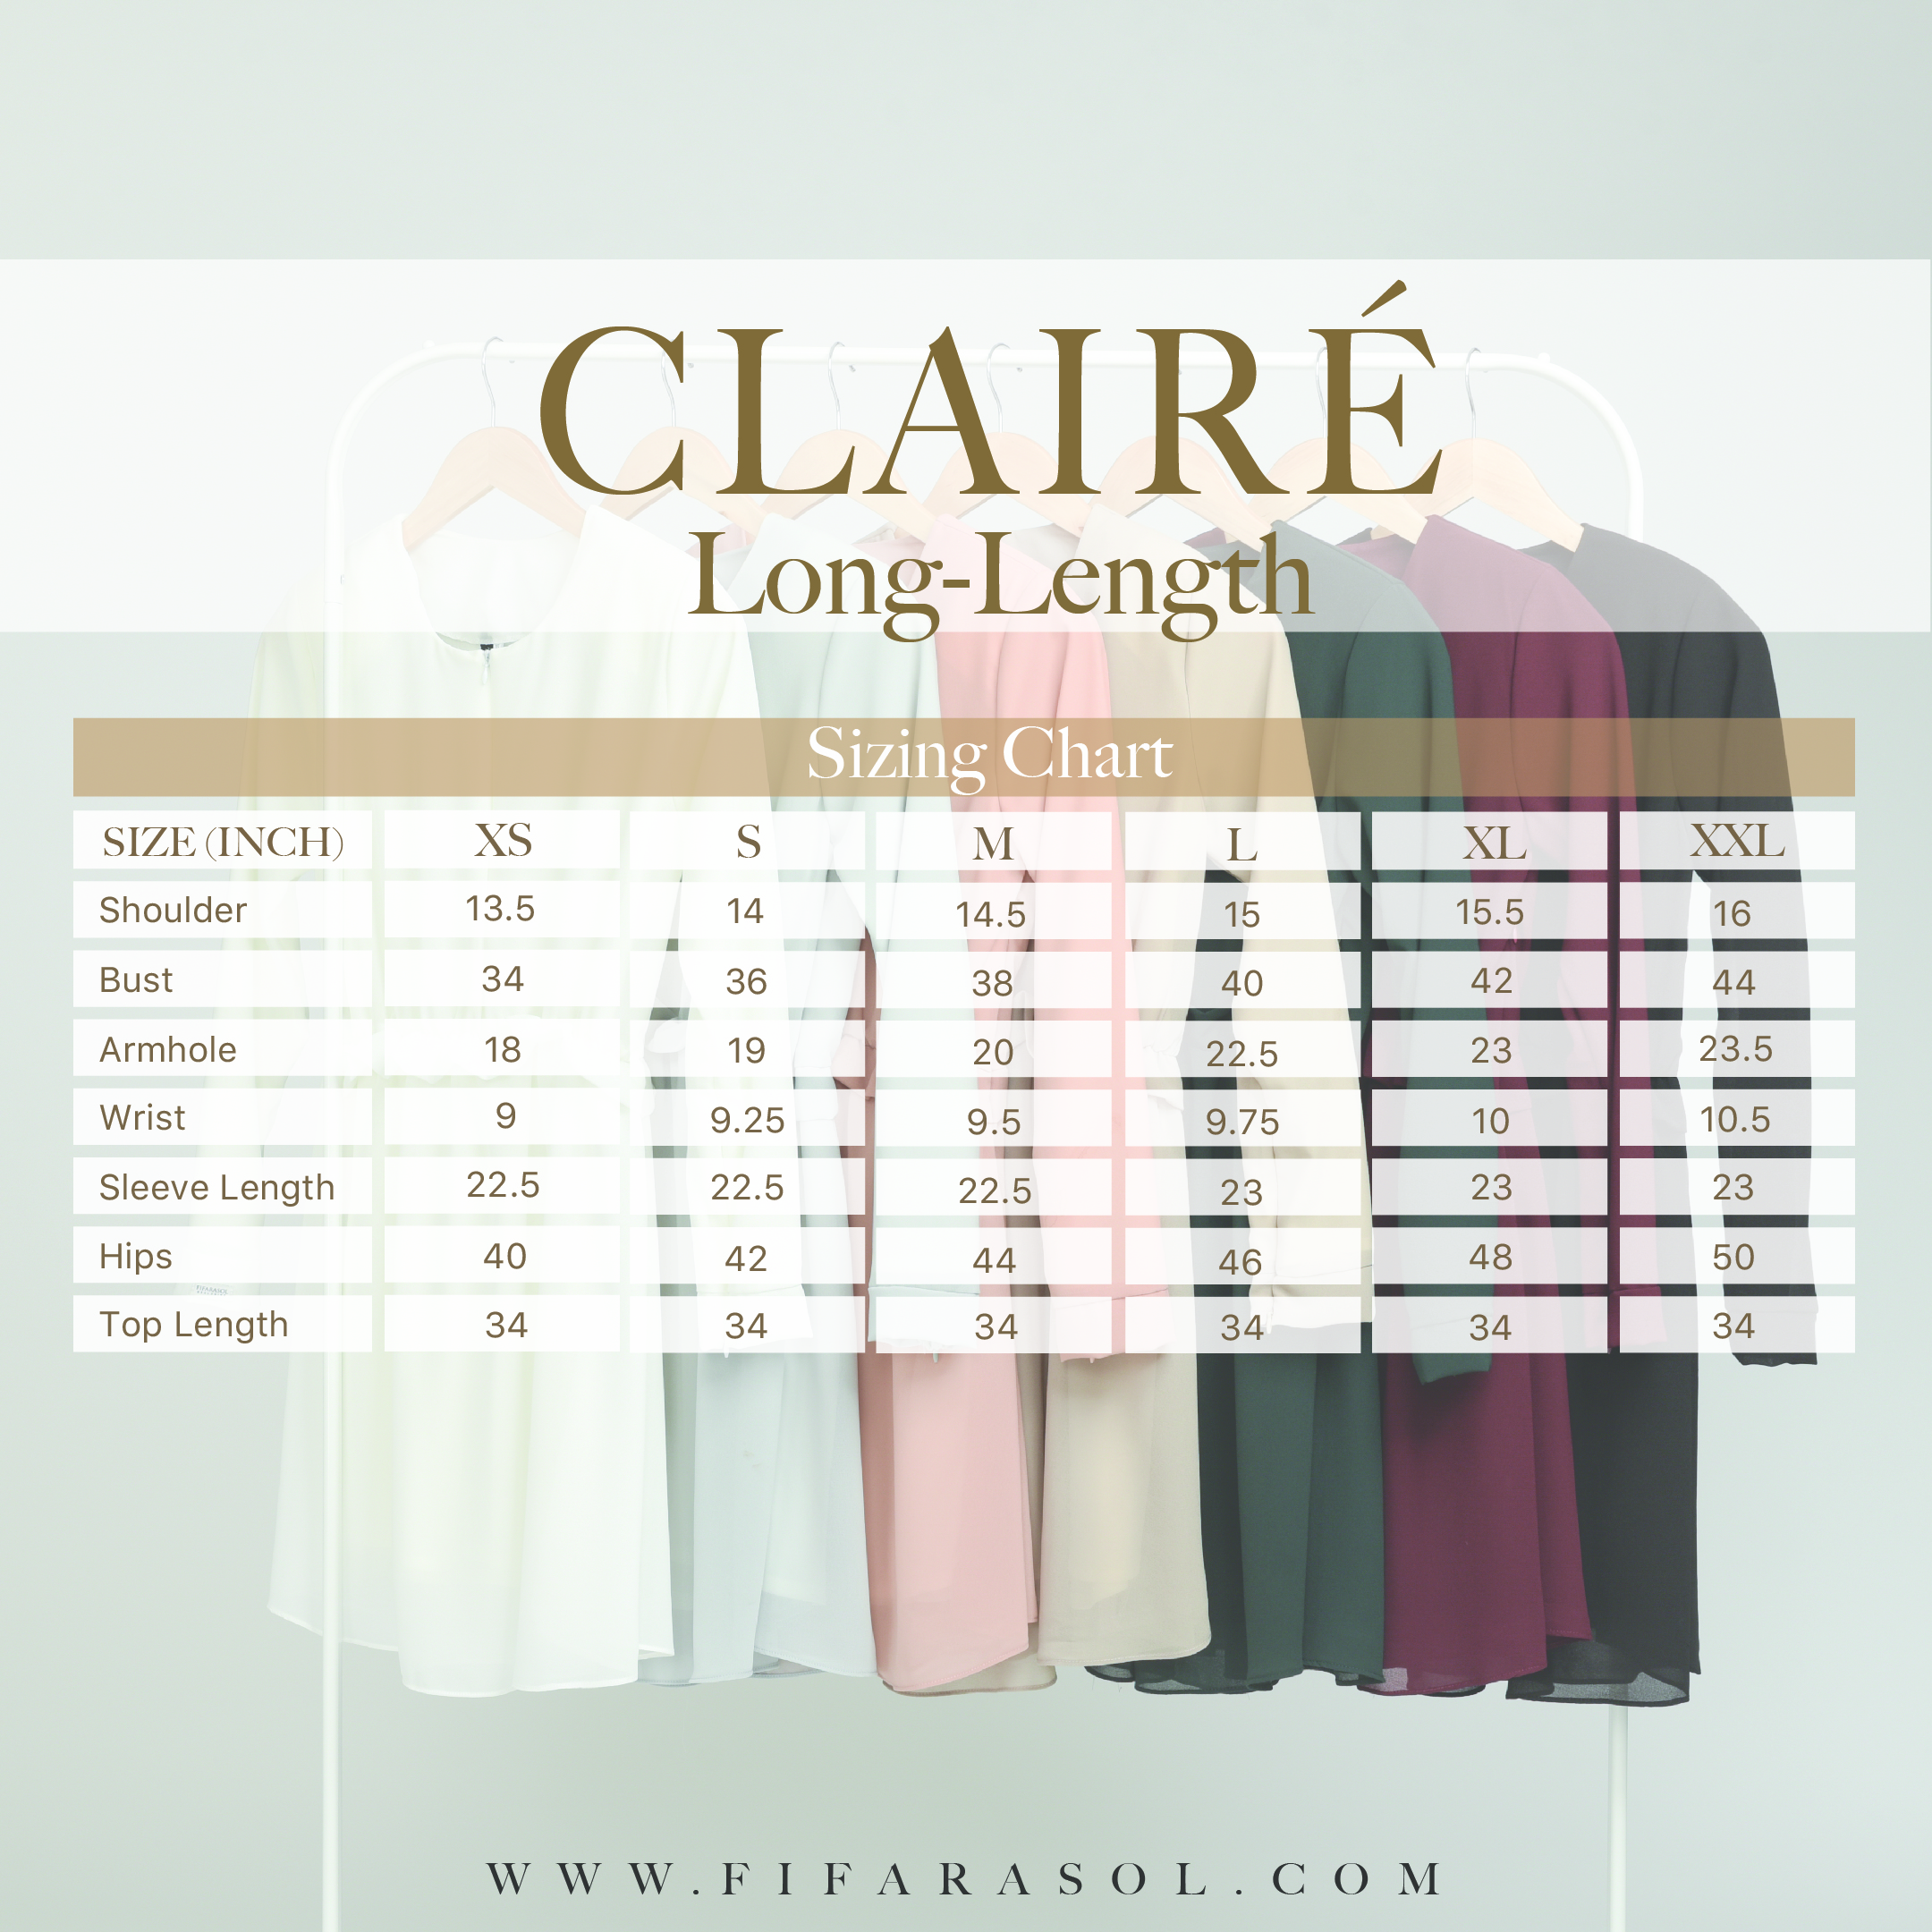 CLAIRE (LONG).jpg